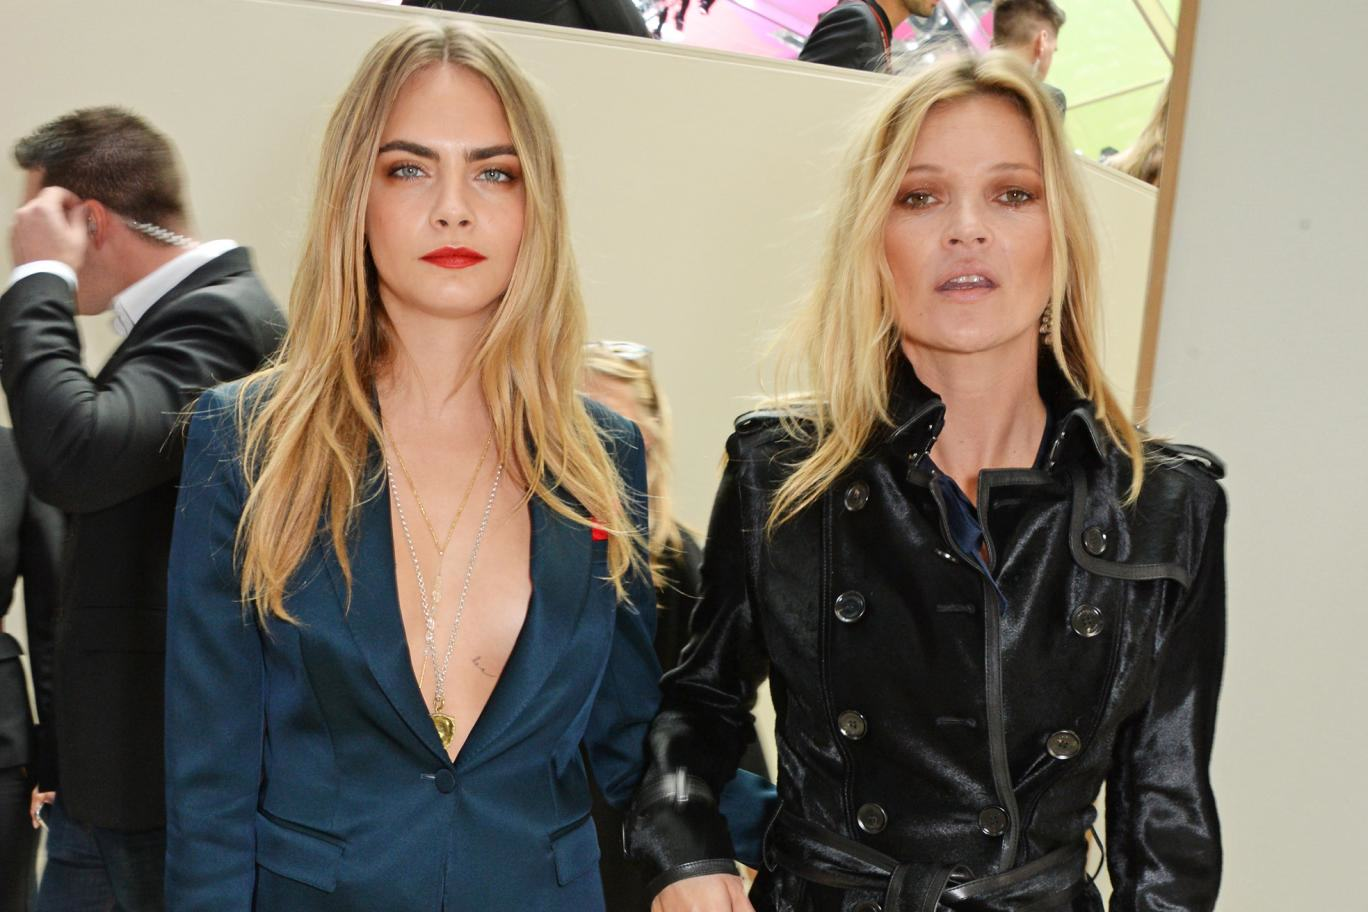 Cara Delevingne And Kate Moss Cause NSFW Stir On Instagram cara crop